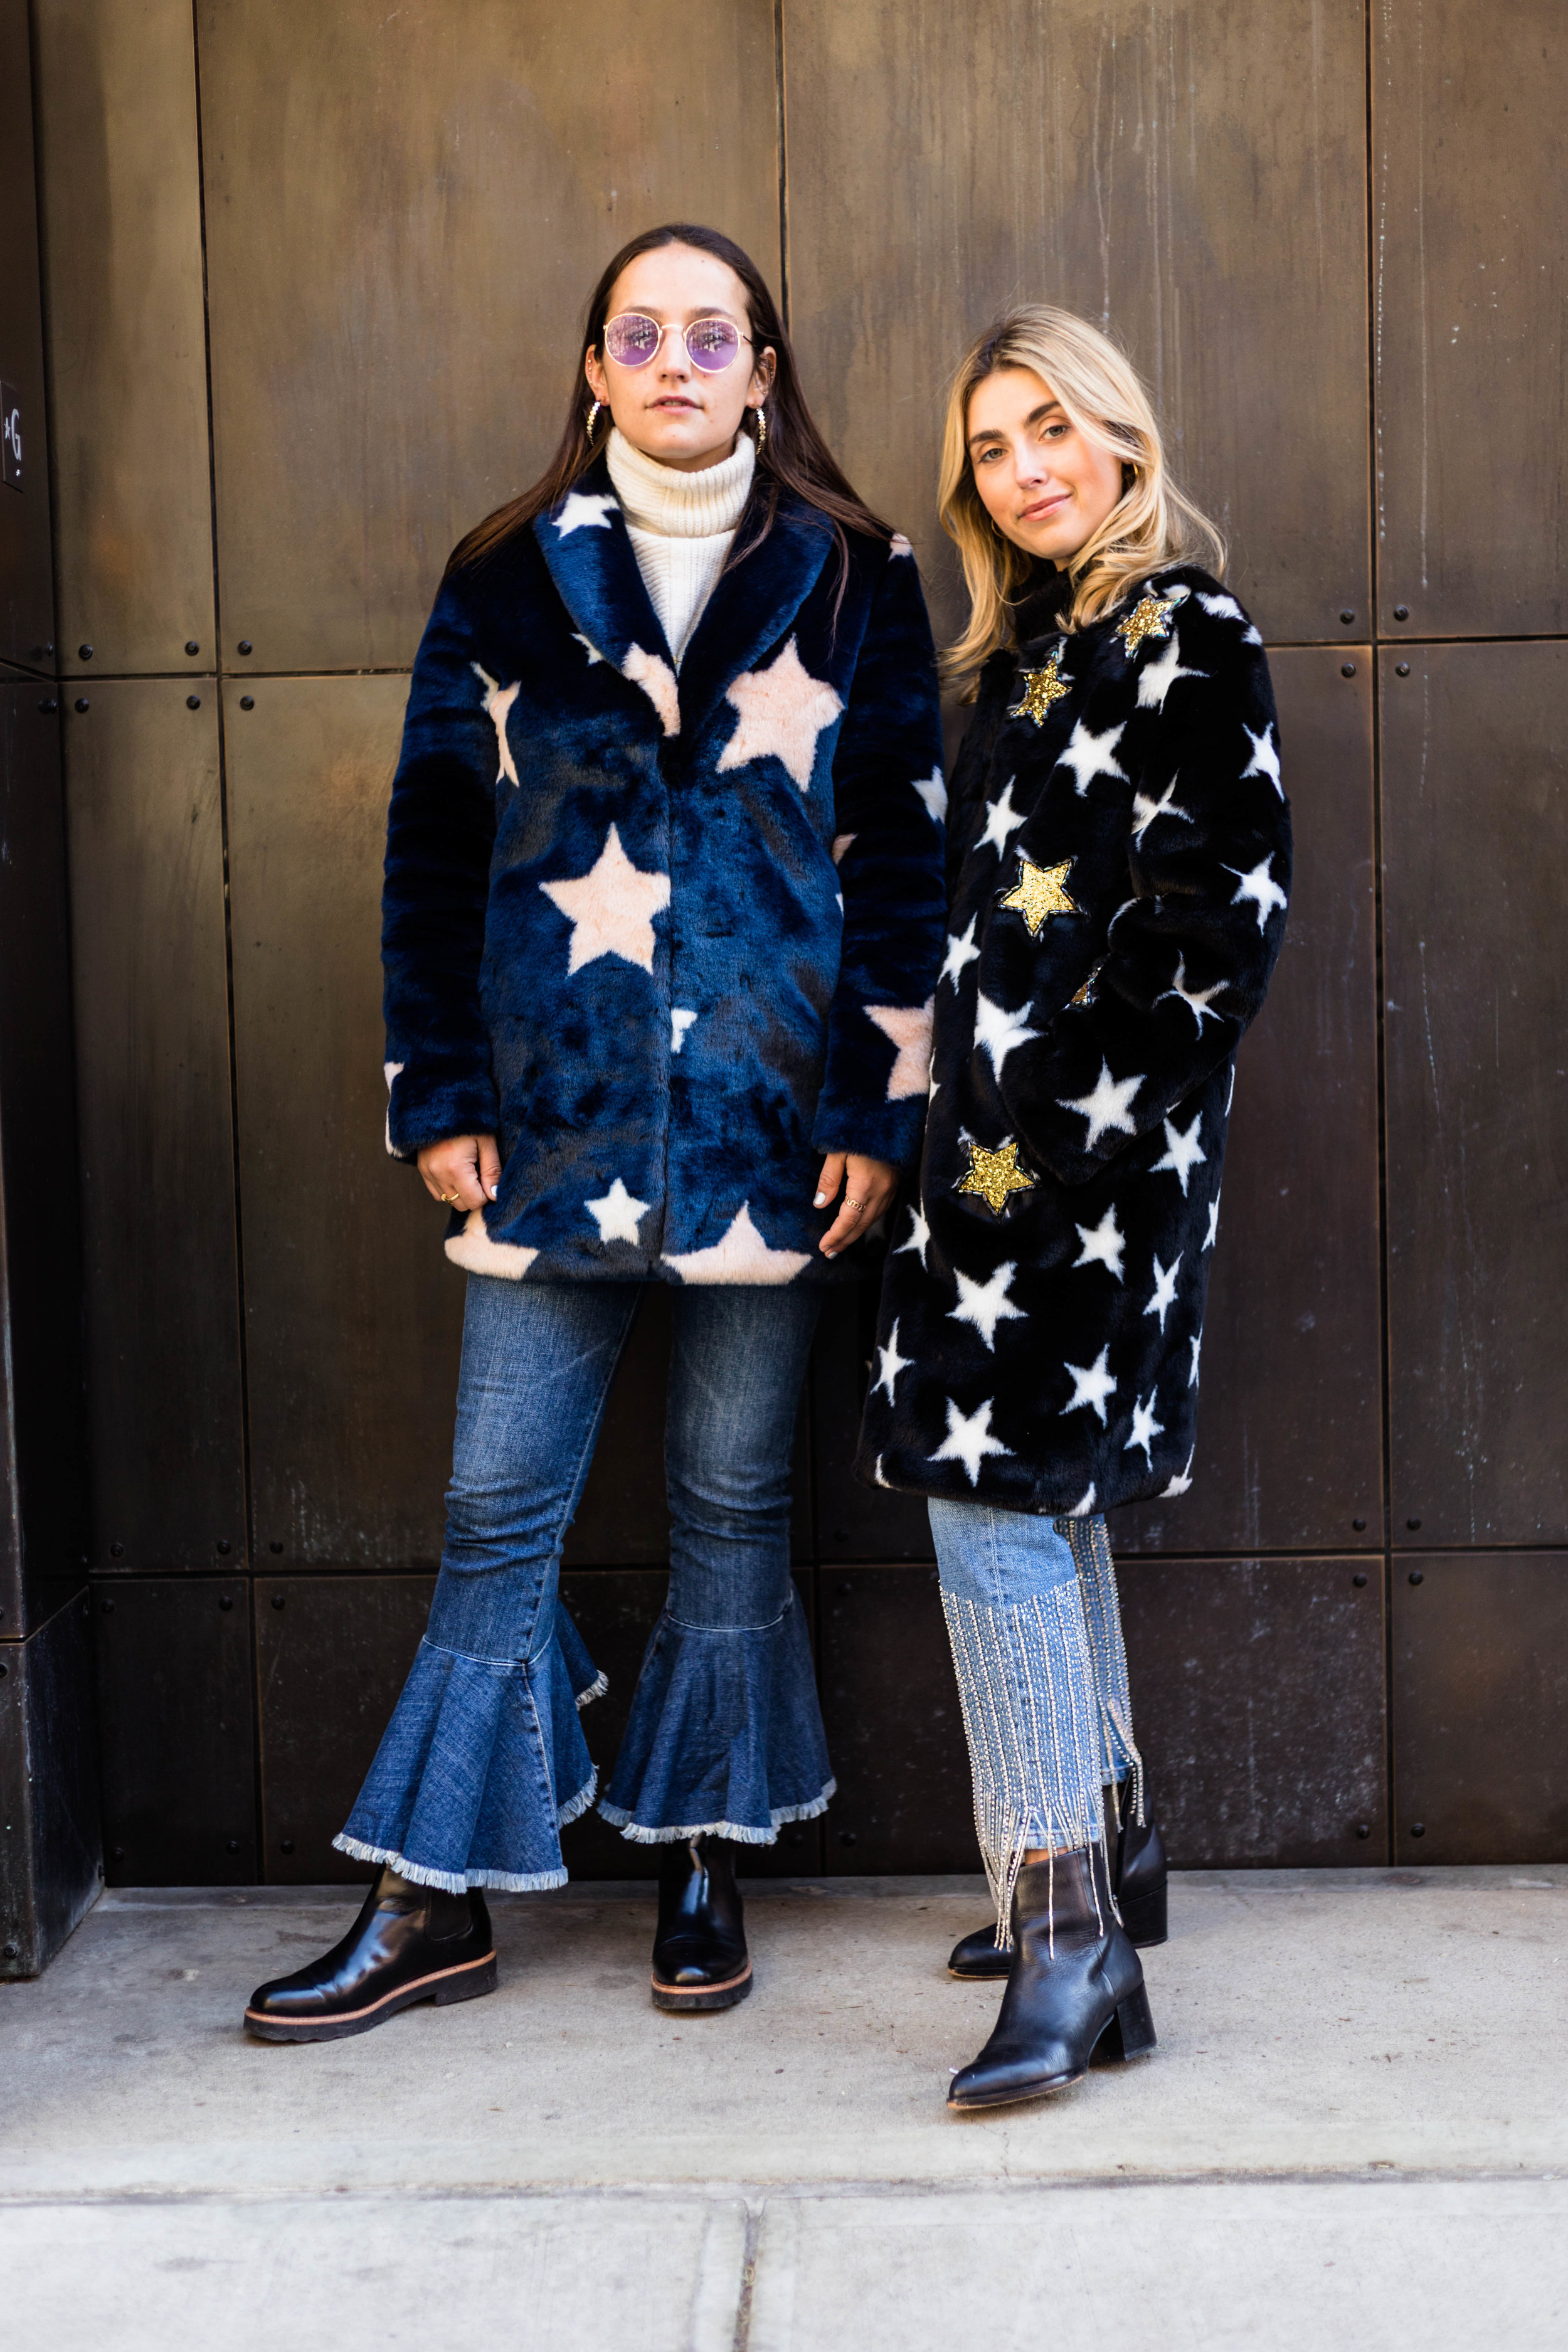 SOPHIE AND CHARLOTTE BICKLEY YIN 2MY YANG SISTER FASHION BLOGGERS NYC SEEING STARS